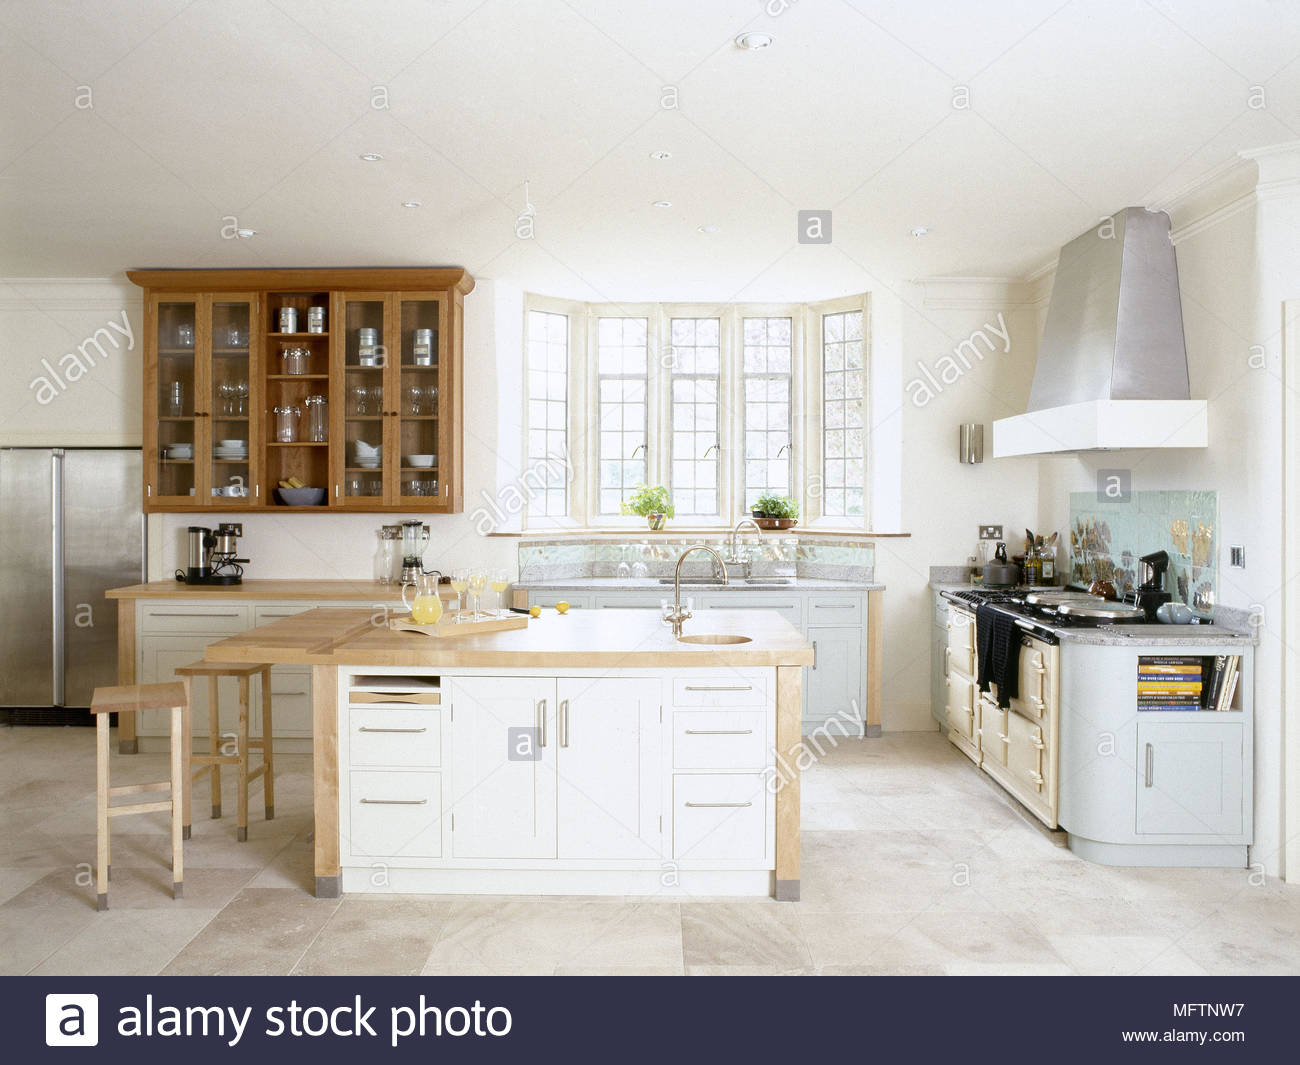 Kitchen with a central island breakfast bar sunny bay window and ...